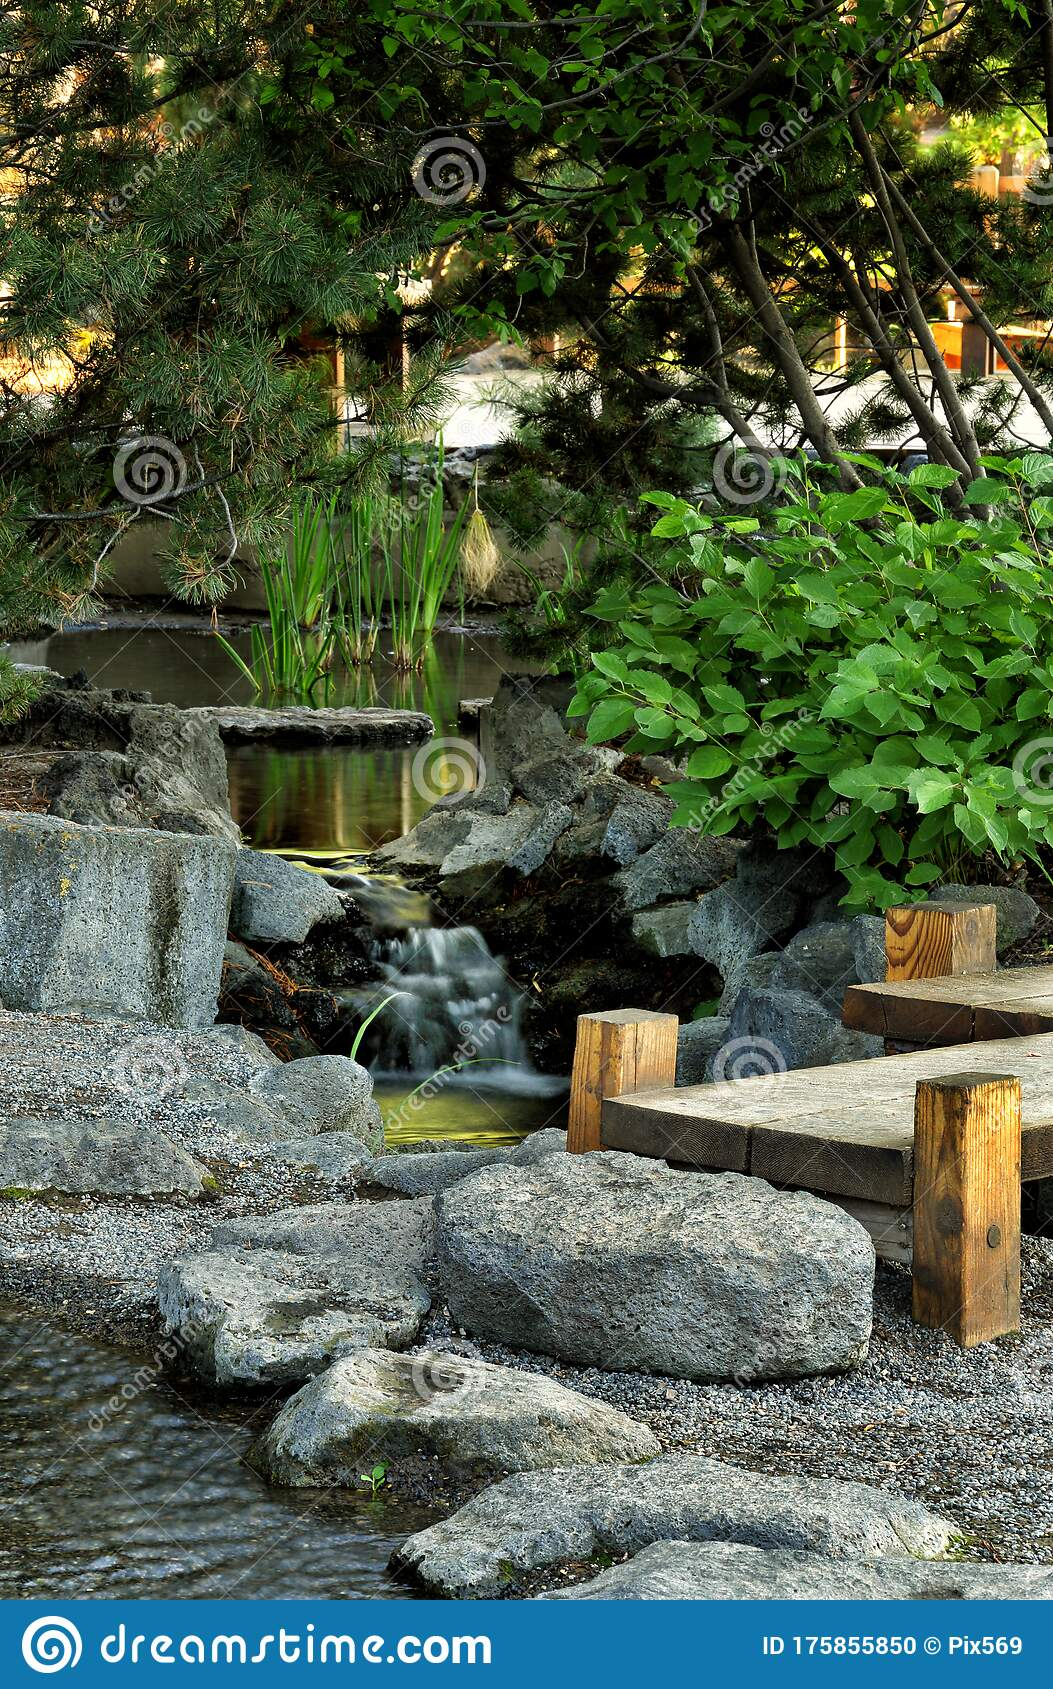 The Japanese Garden In The City Of Idaho Falls Idaho Stock Photo Image Of Garden Cultural 175855850